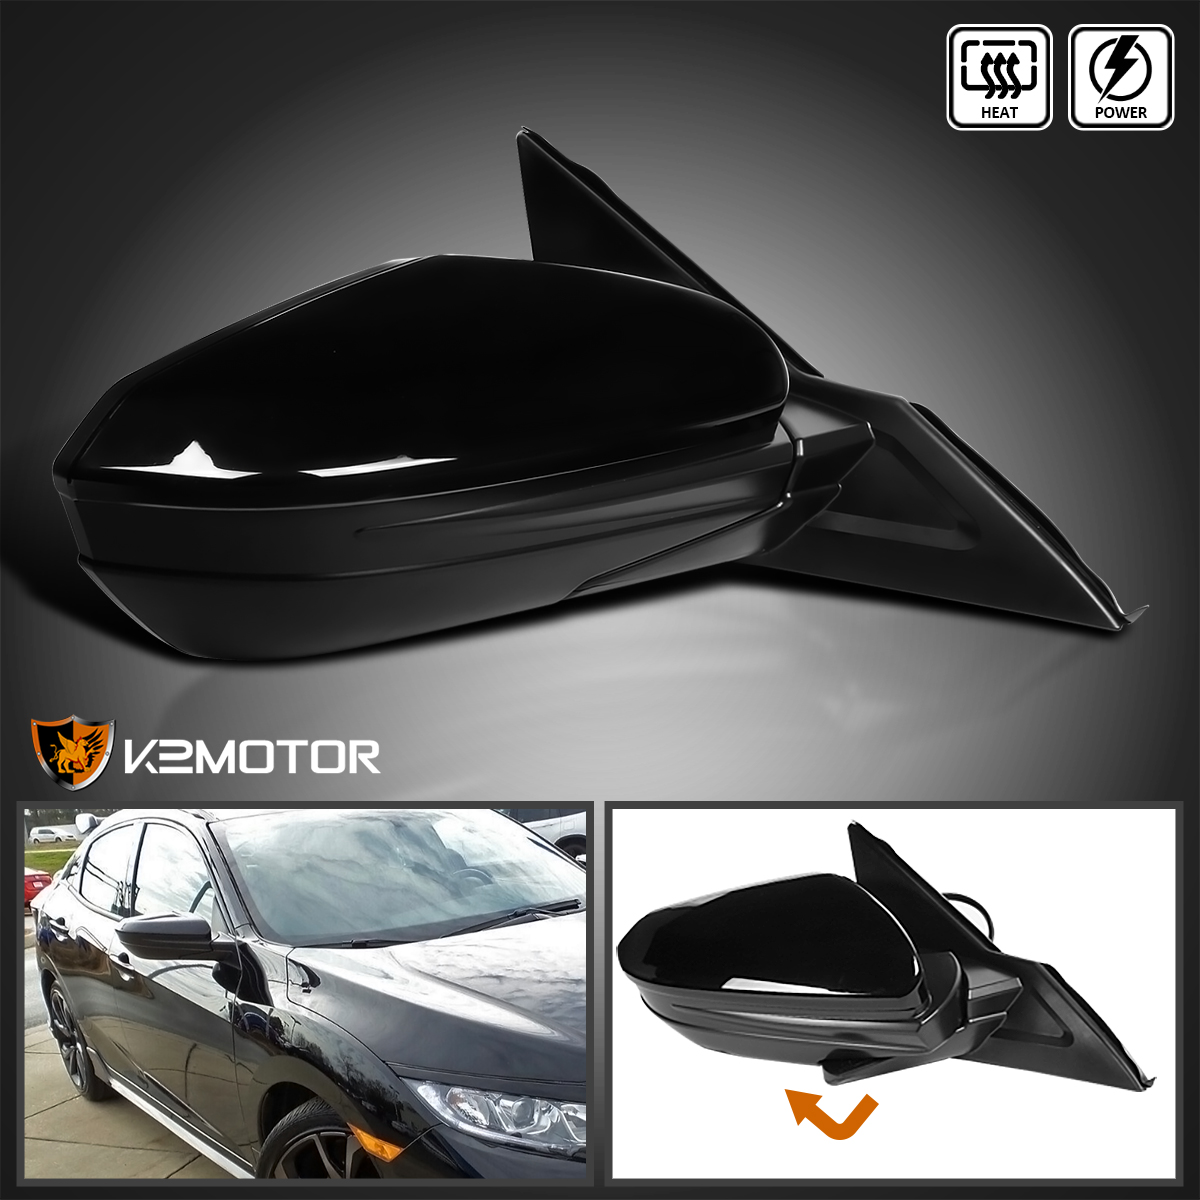 Fits 2016-2018 Honda Civic 5 Pin Power Heated Adjustable Right Side Fold Mirror